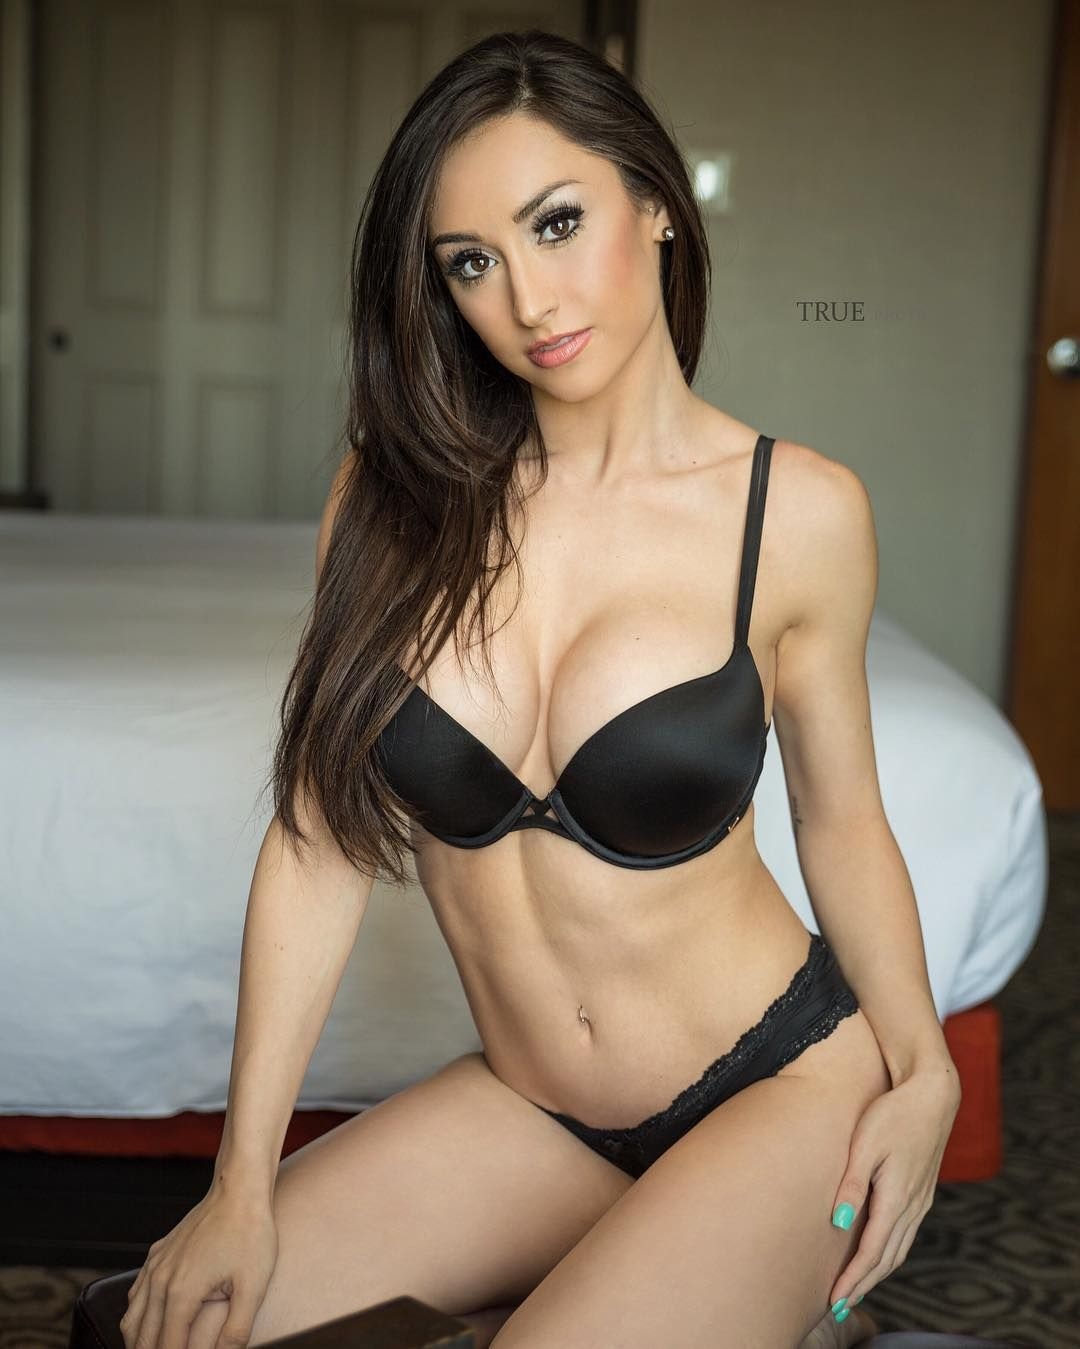 7 624 likes 79 comments reya sunshine reya sunshine for Perfect comment for a picture